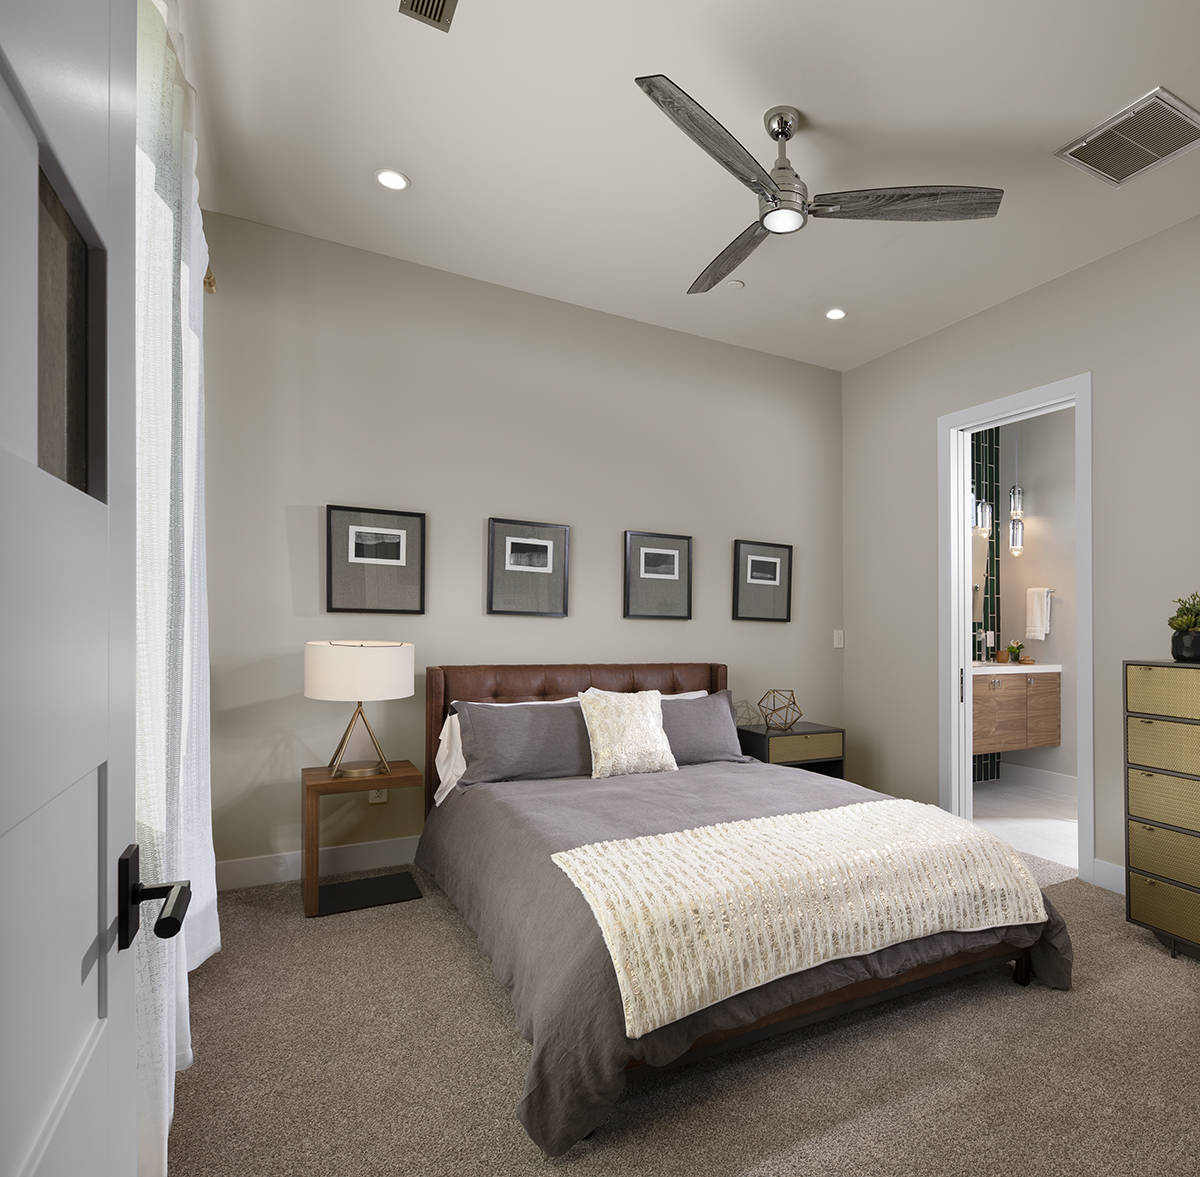 One of four bedrooms. (Sunstate Realty)